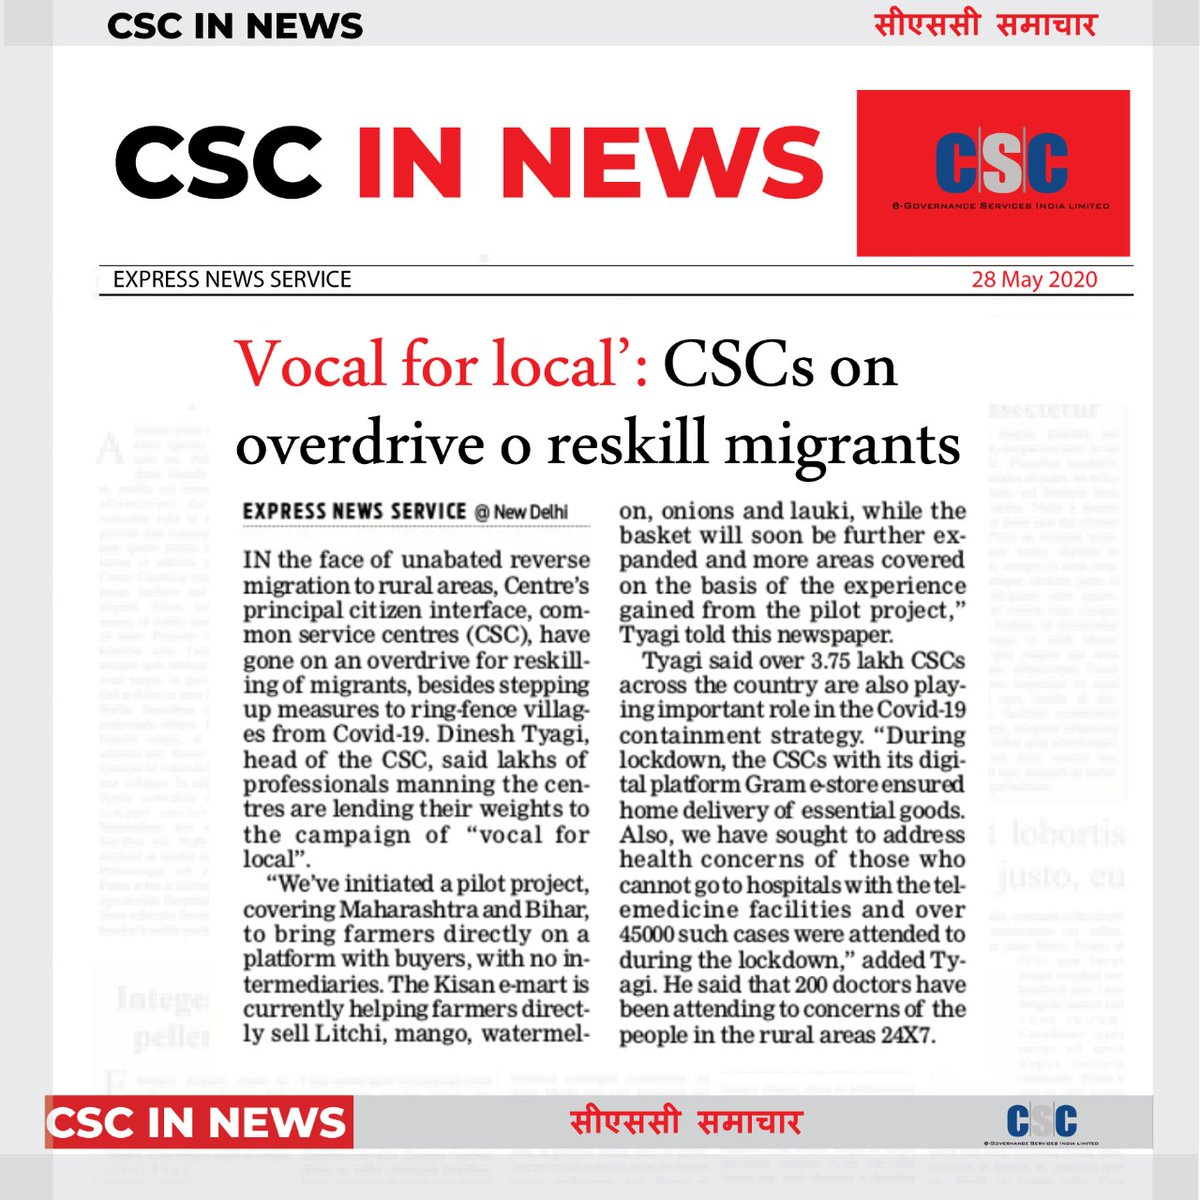 CSCs become vocal for local in the face of unprecedented crisis owing to Coronavirus pandemic in rural India.